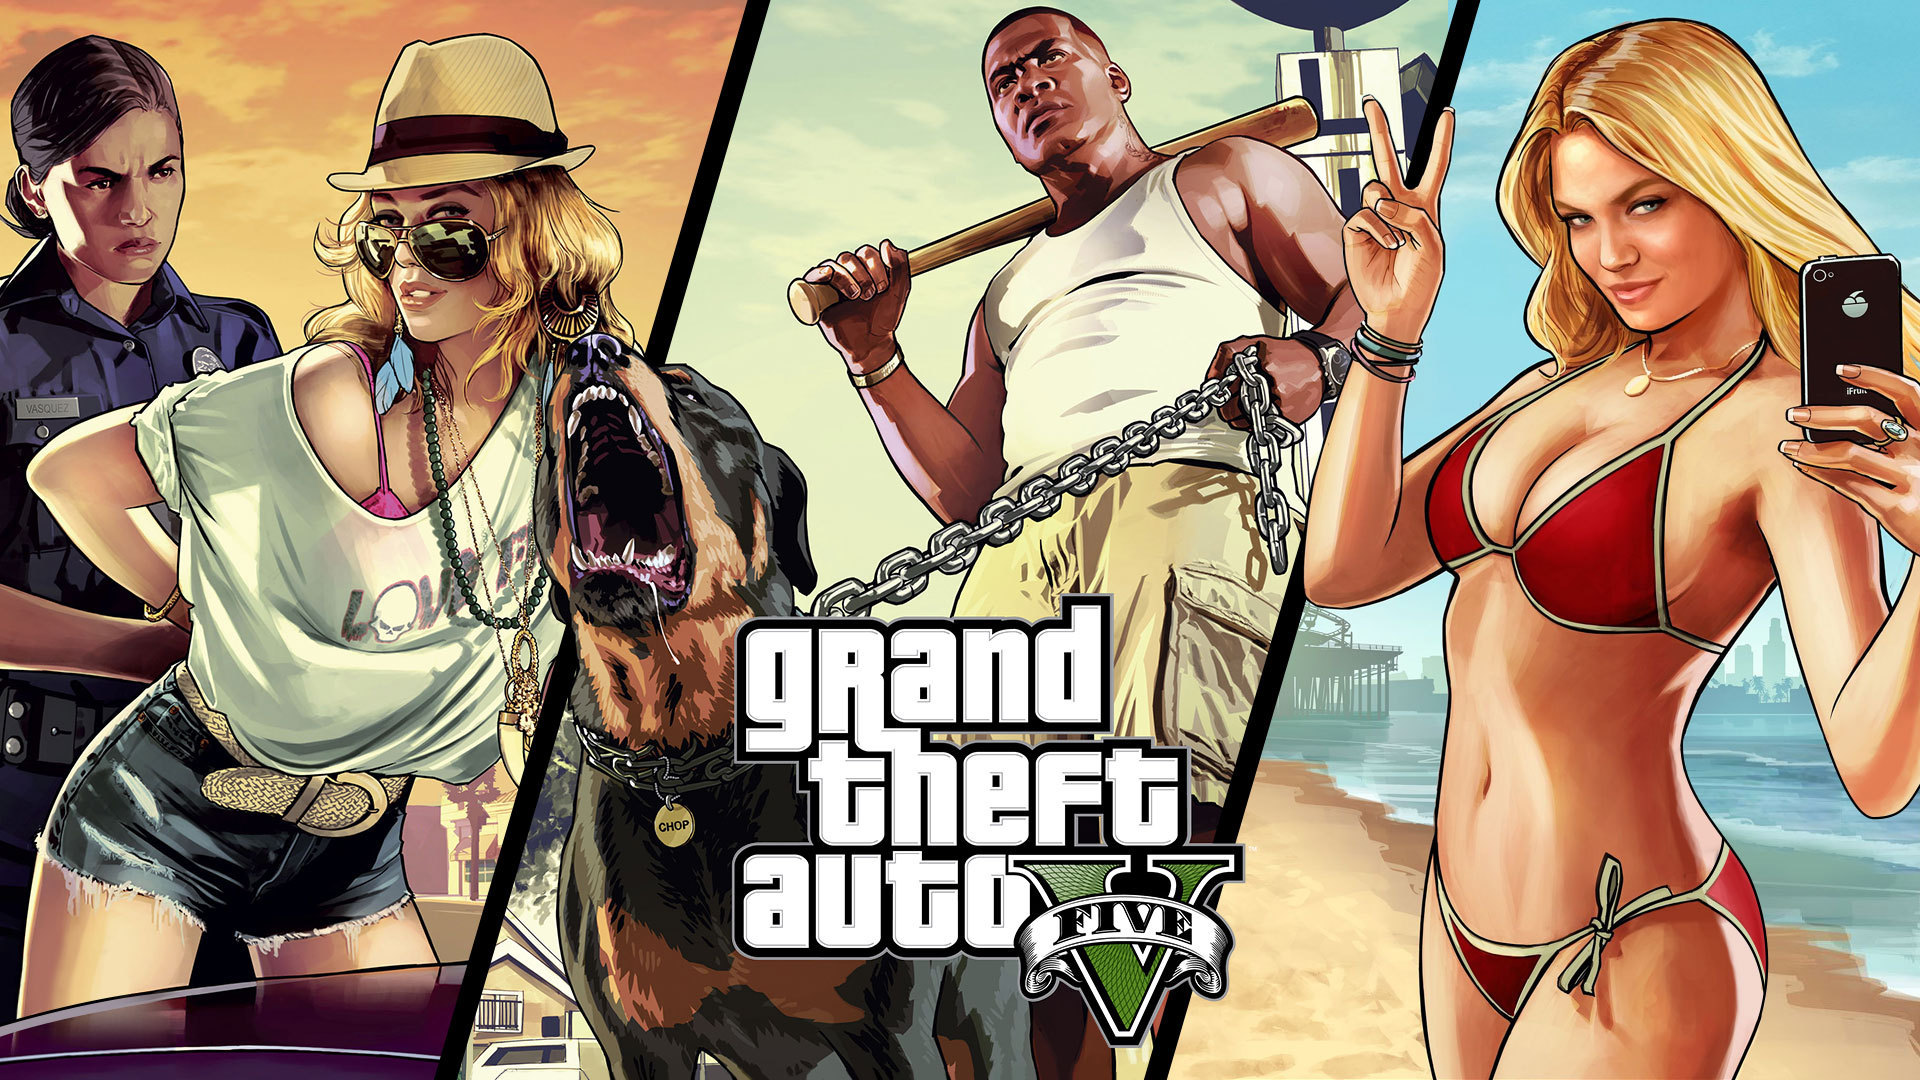 GTA V Preview: characters, missions, multiplayer and more…